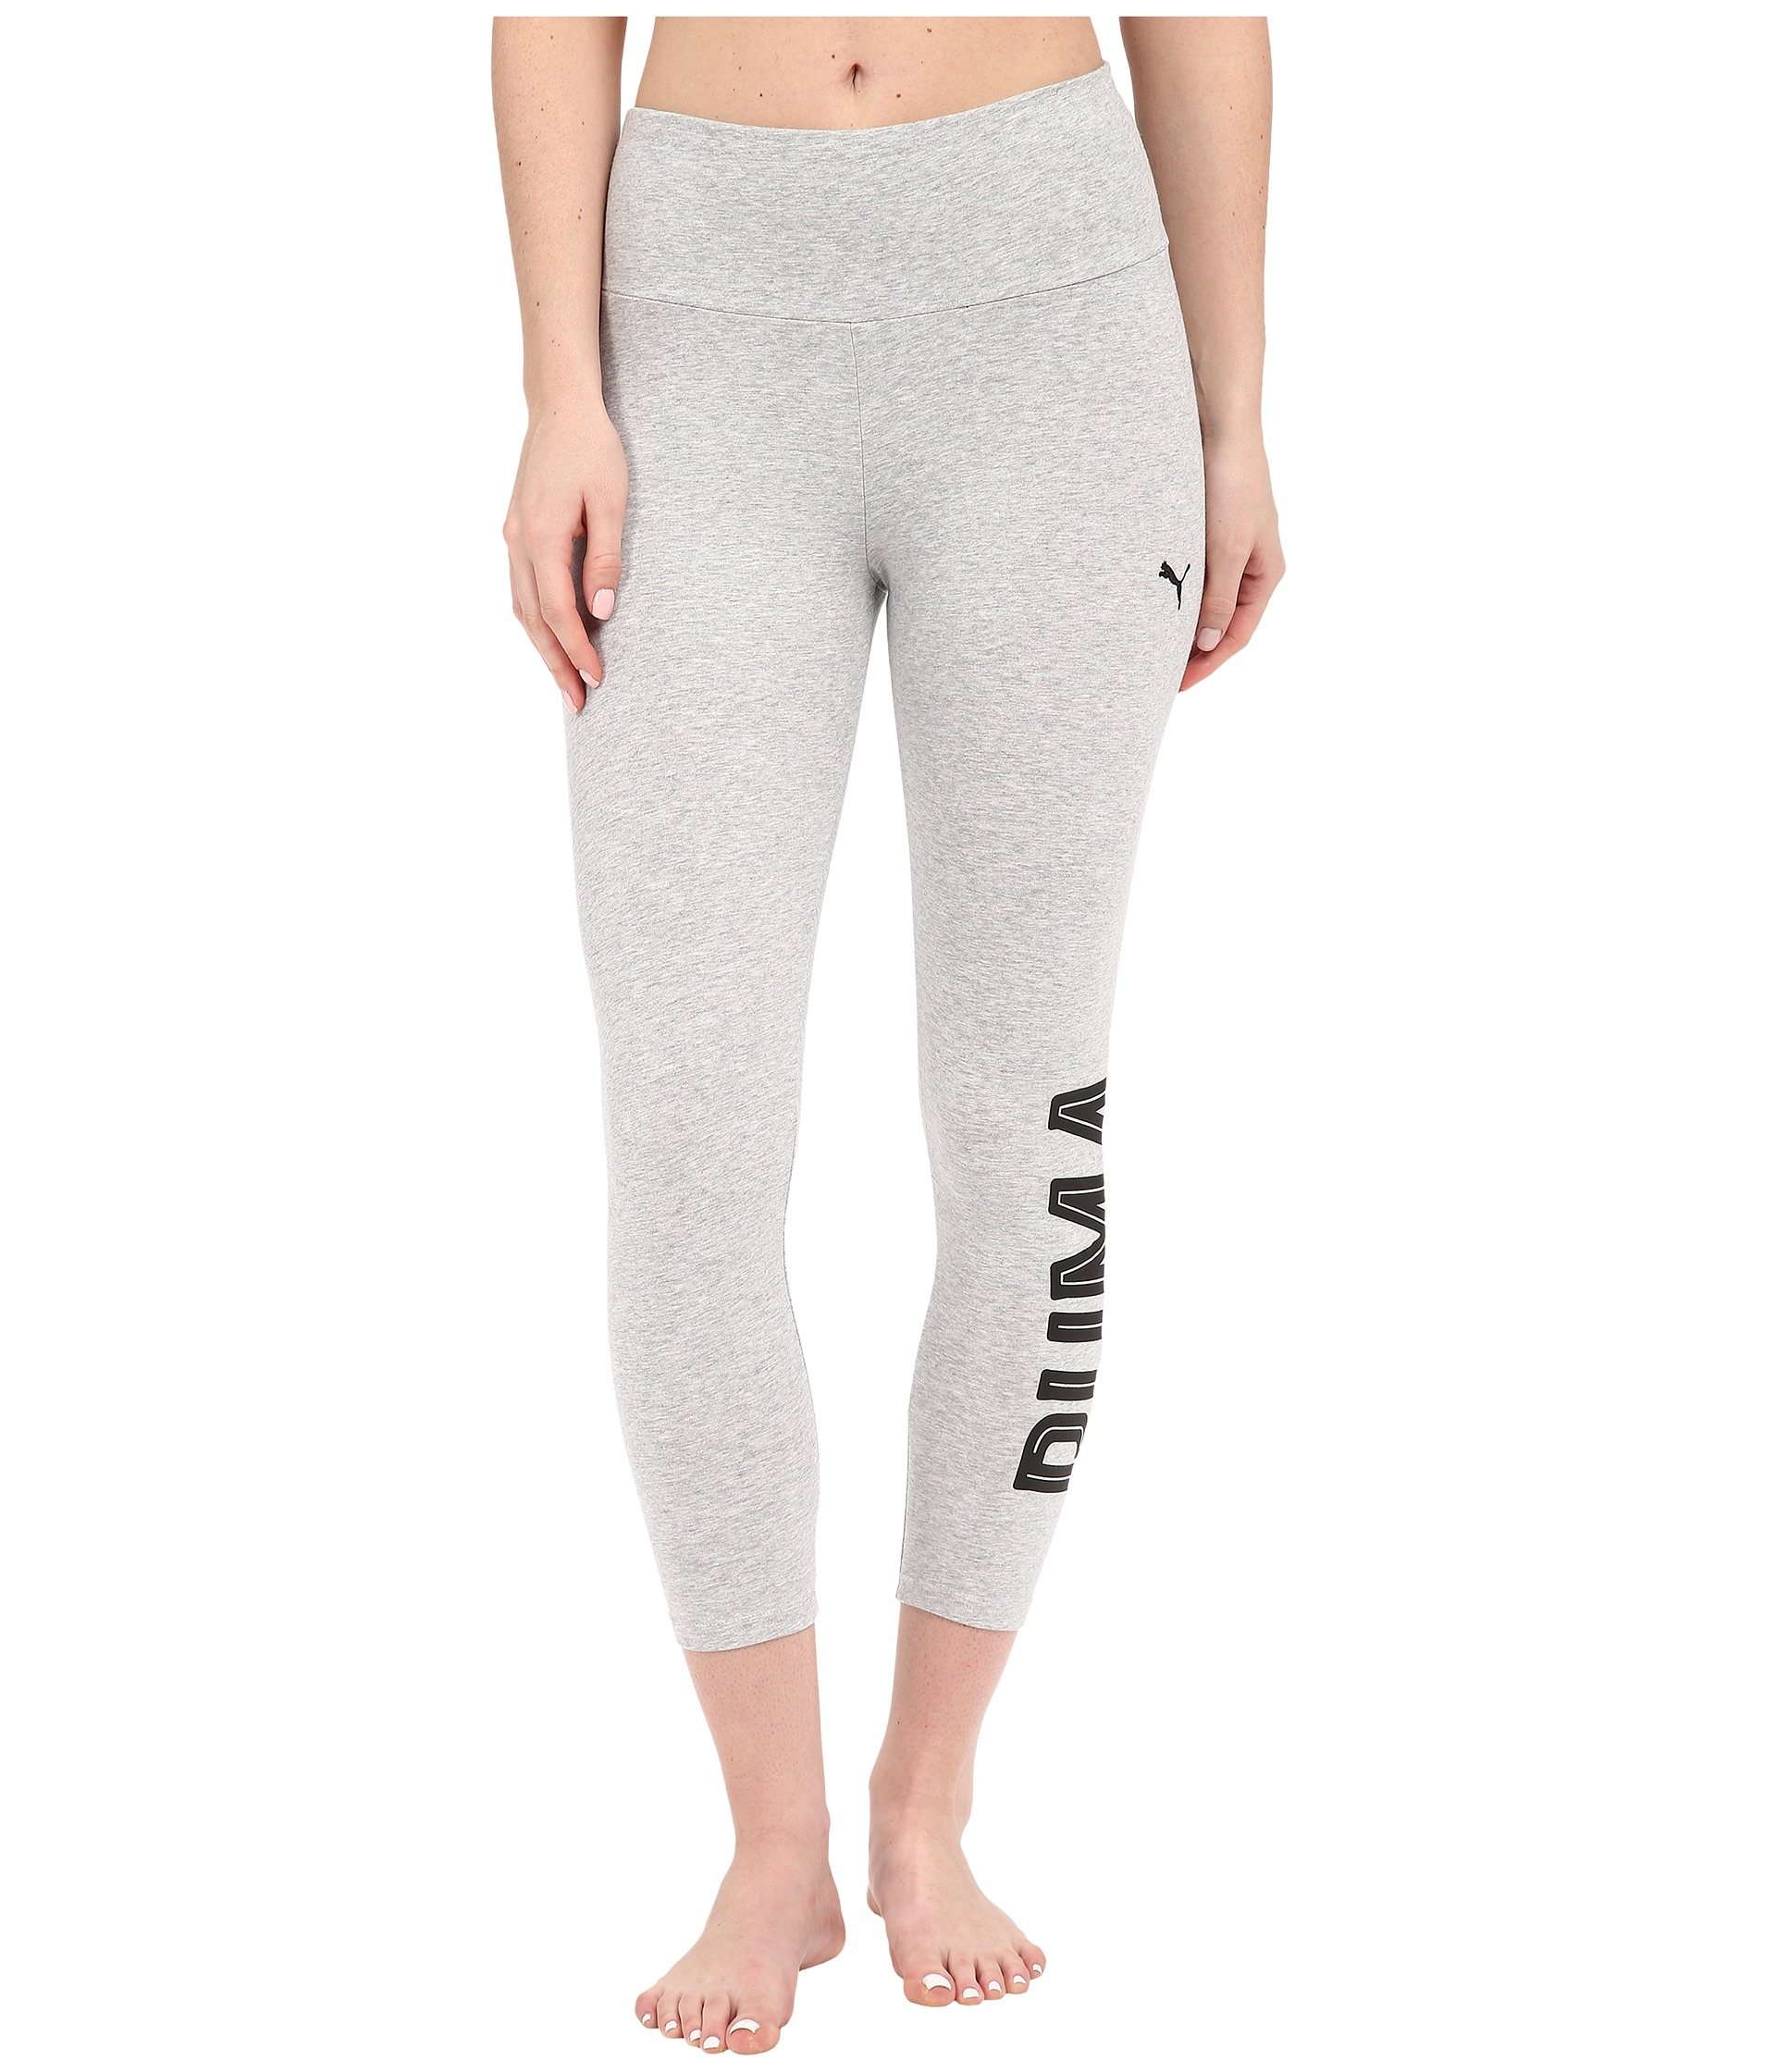 d07c837e30aa Lyst - PUMA Style Swagger 3 4 Leggings in White